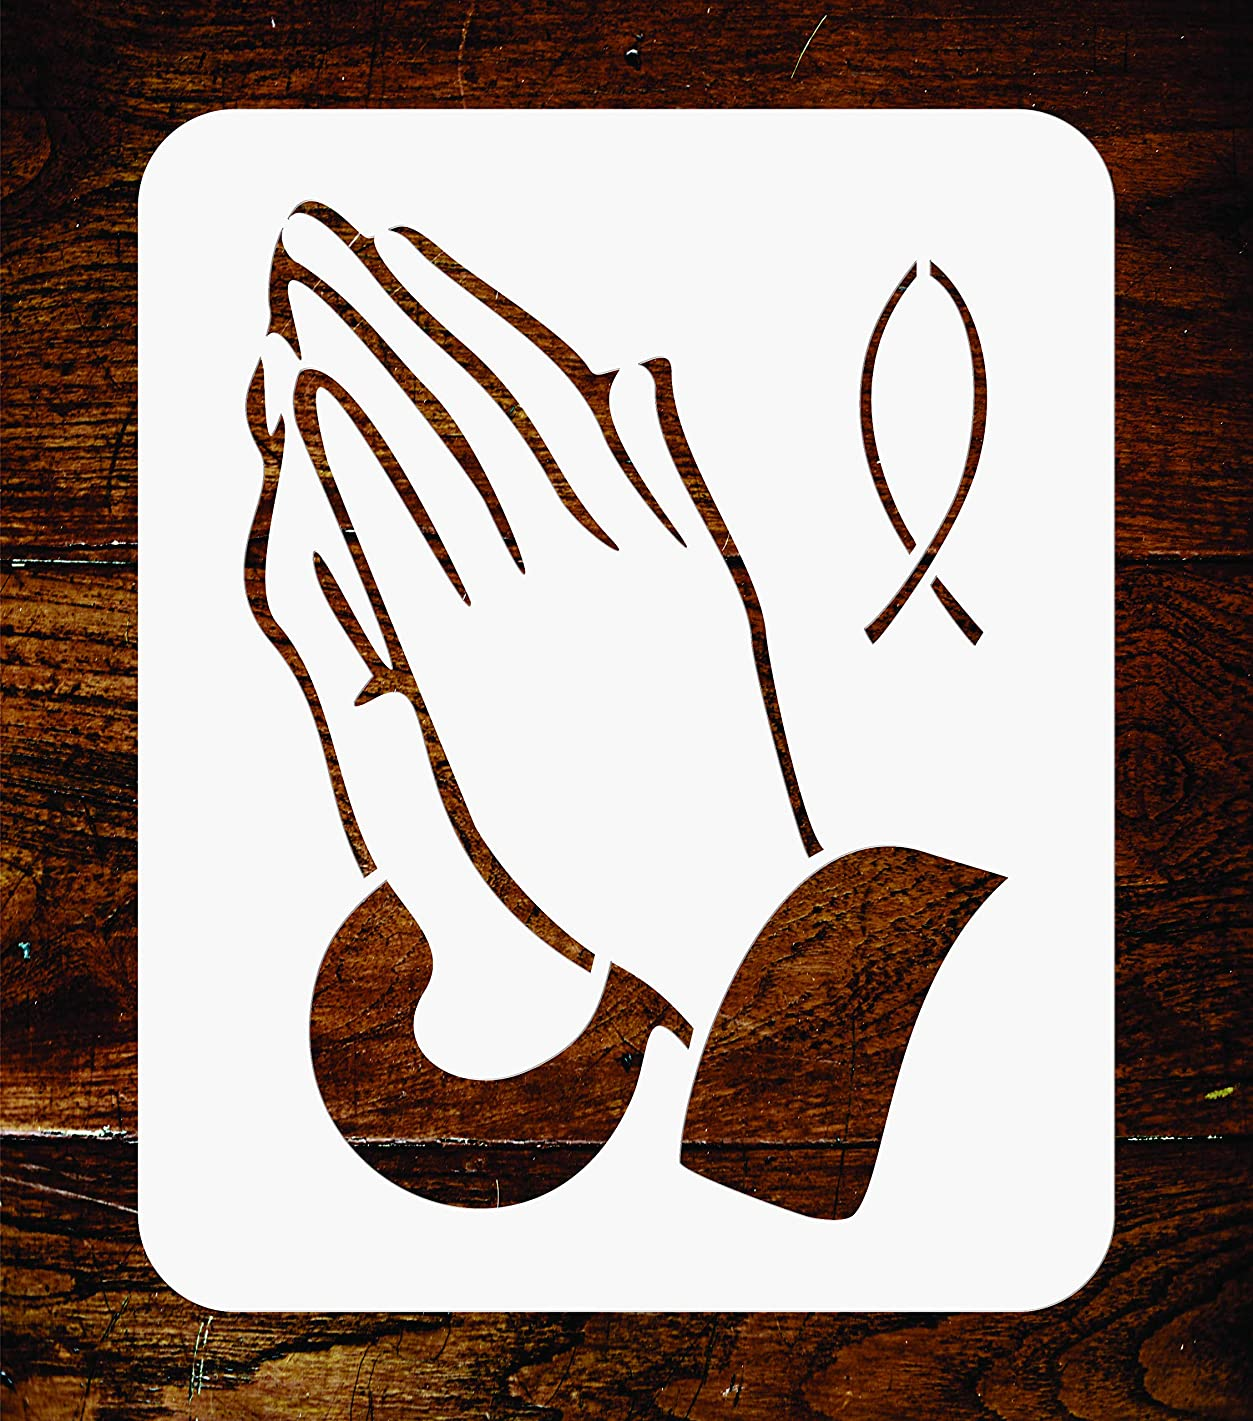 Praying Hands Stencil - 4.5 x 6 inch - Reusable Religious Catholic Fish Wall Stencils Template - Use on Paper Projects Scrapbook Journal Walls Floors Fabric Furniture Glass Wood etc.